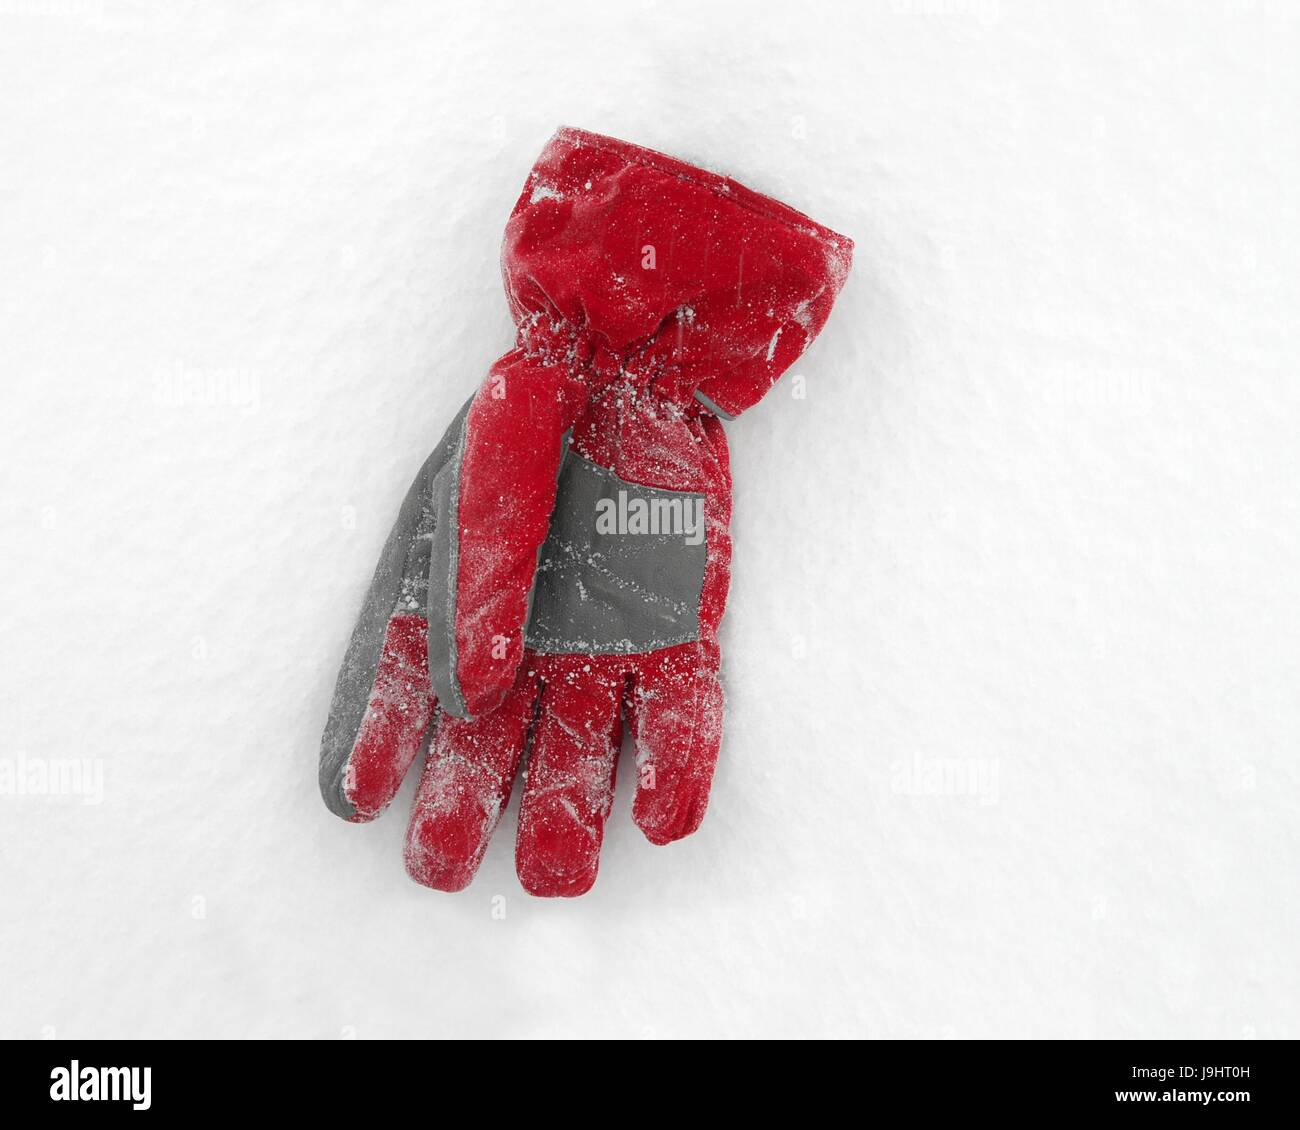 winter, snow, coke, cocaine, material, drug, anaesthetic, addictive drug, - Stock Image